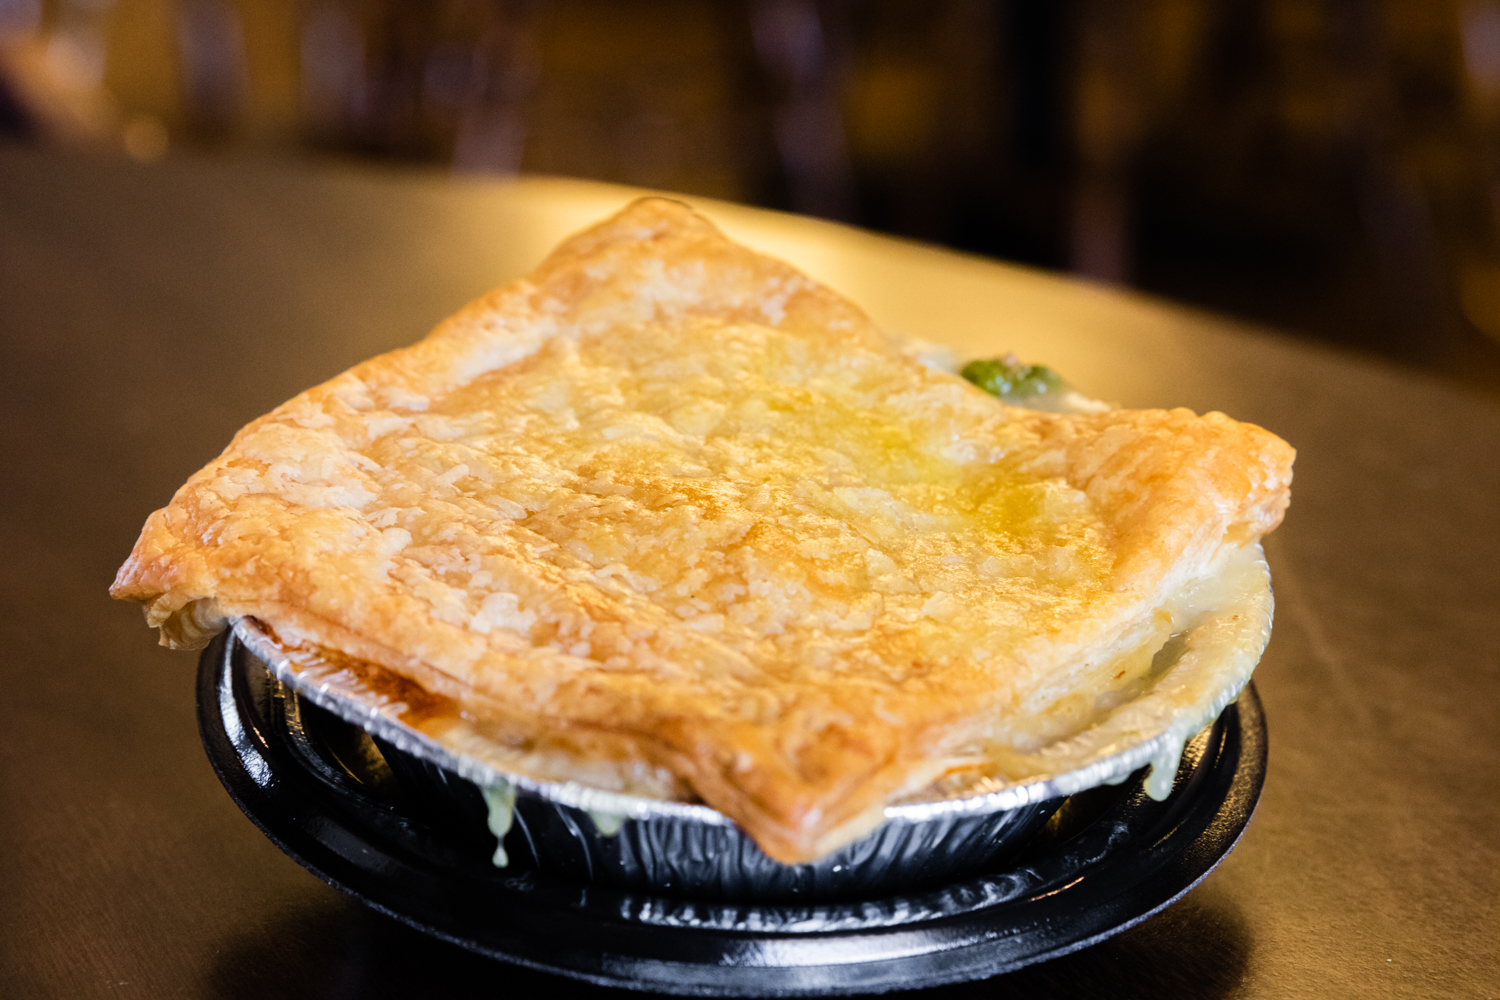 Turkey pot pie in aluminum foil dish on top of black dish